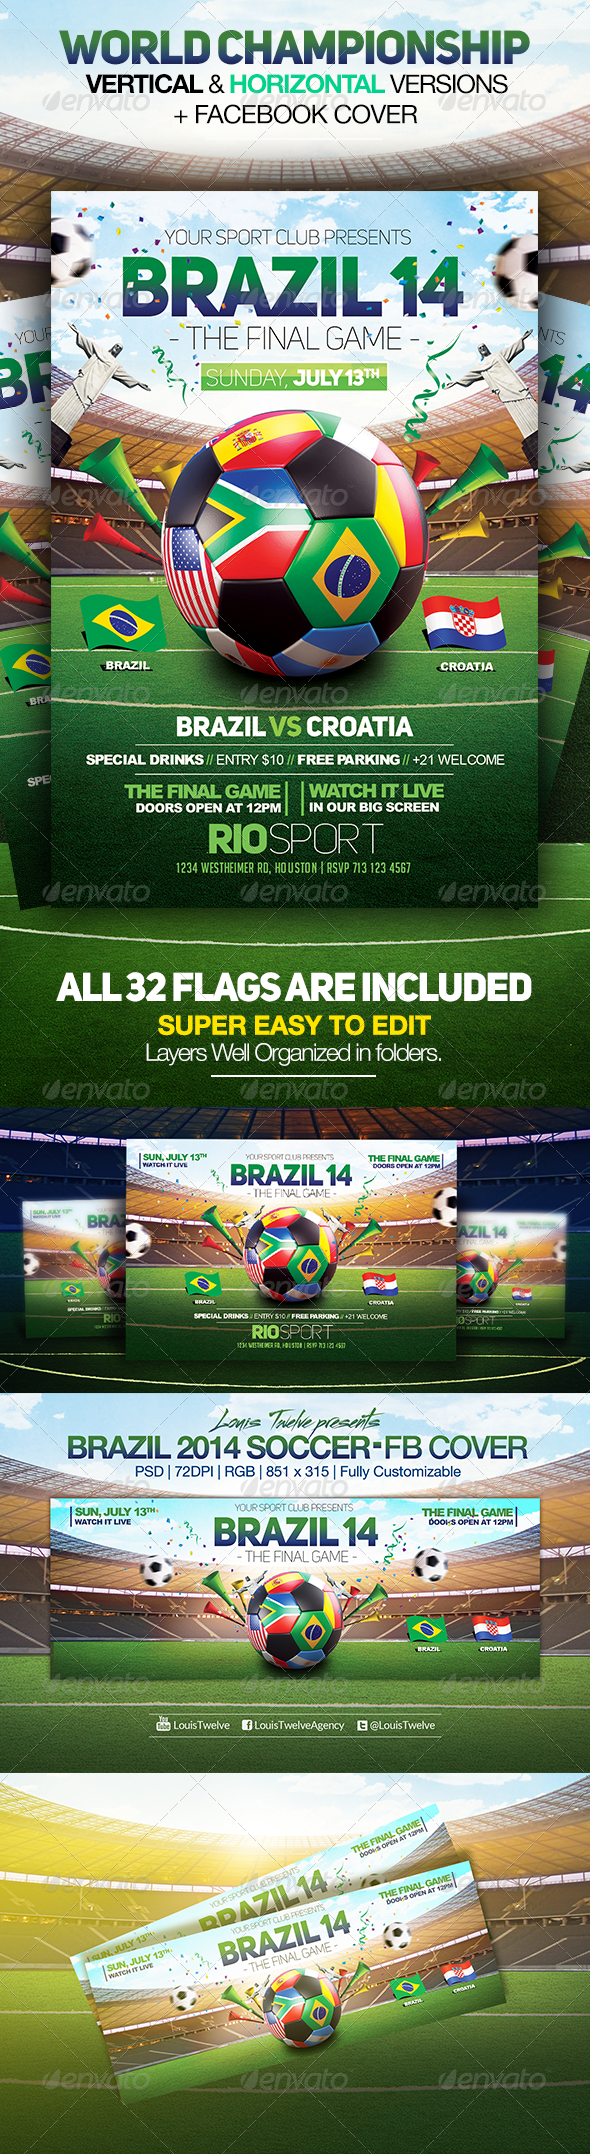 GraphicRiver World Championship 2014 Flyers & FB Cover V2 7989088